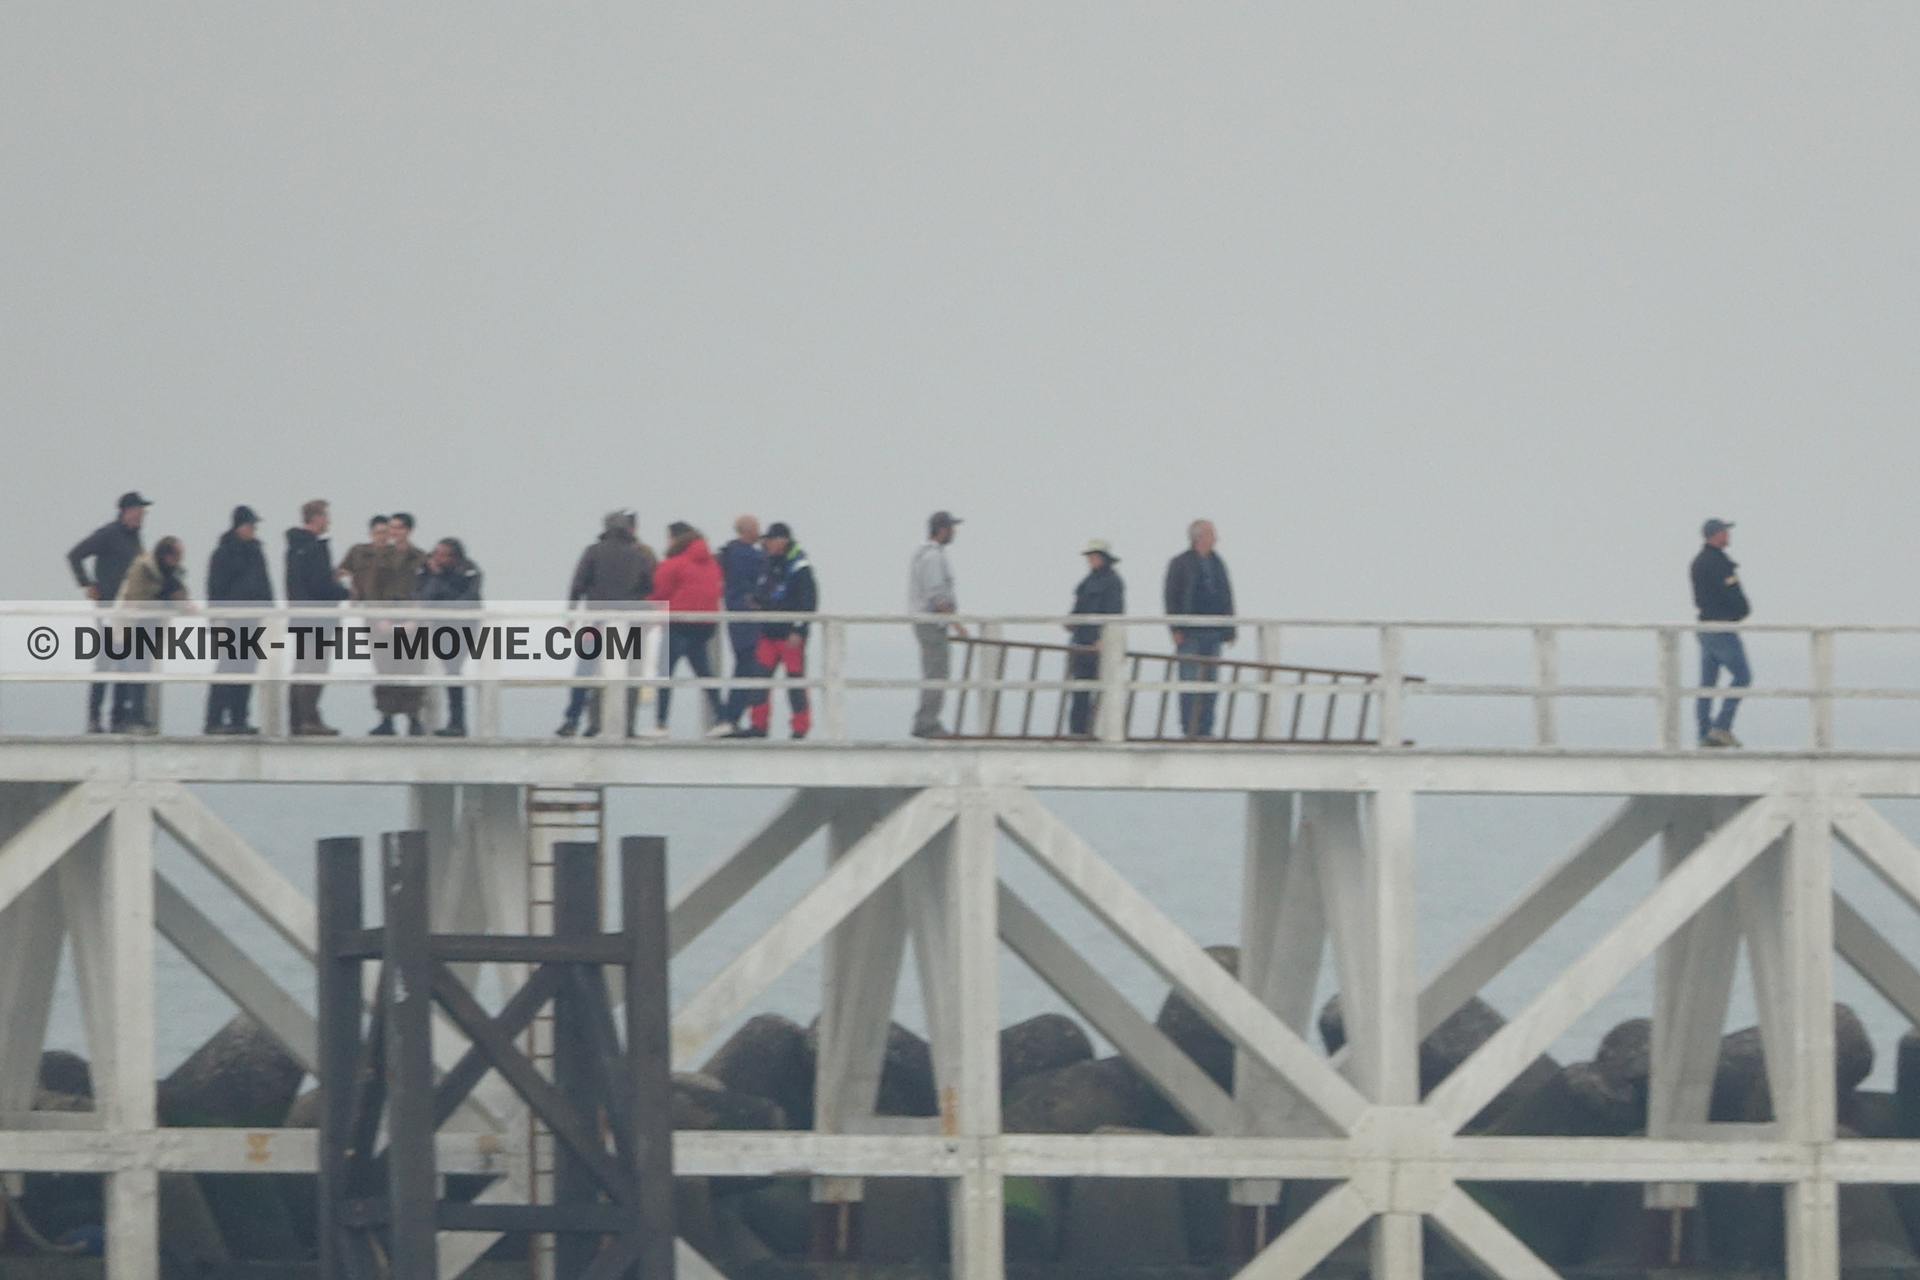 Picture with actor, grey sky, Hoyte van Hoytema, EST pier, Christopher Nolan, technical team, Nilo Otero,  from behind the scene of the Dunkirk movie by Nolan